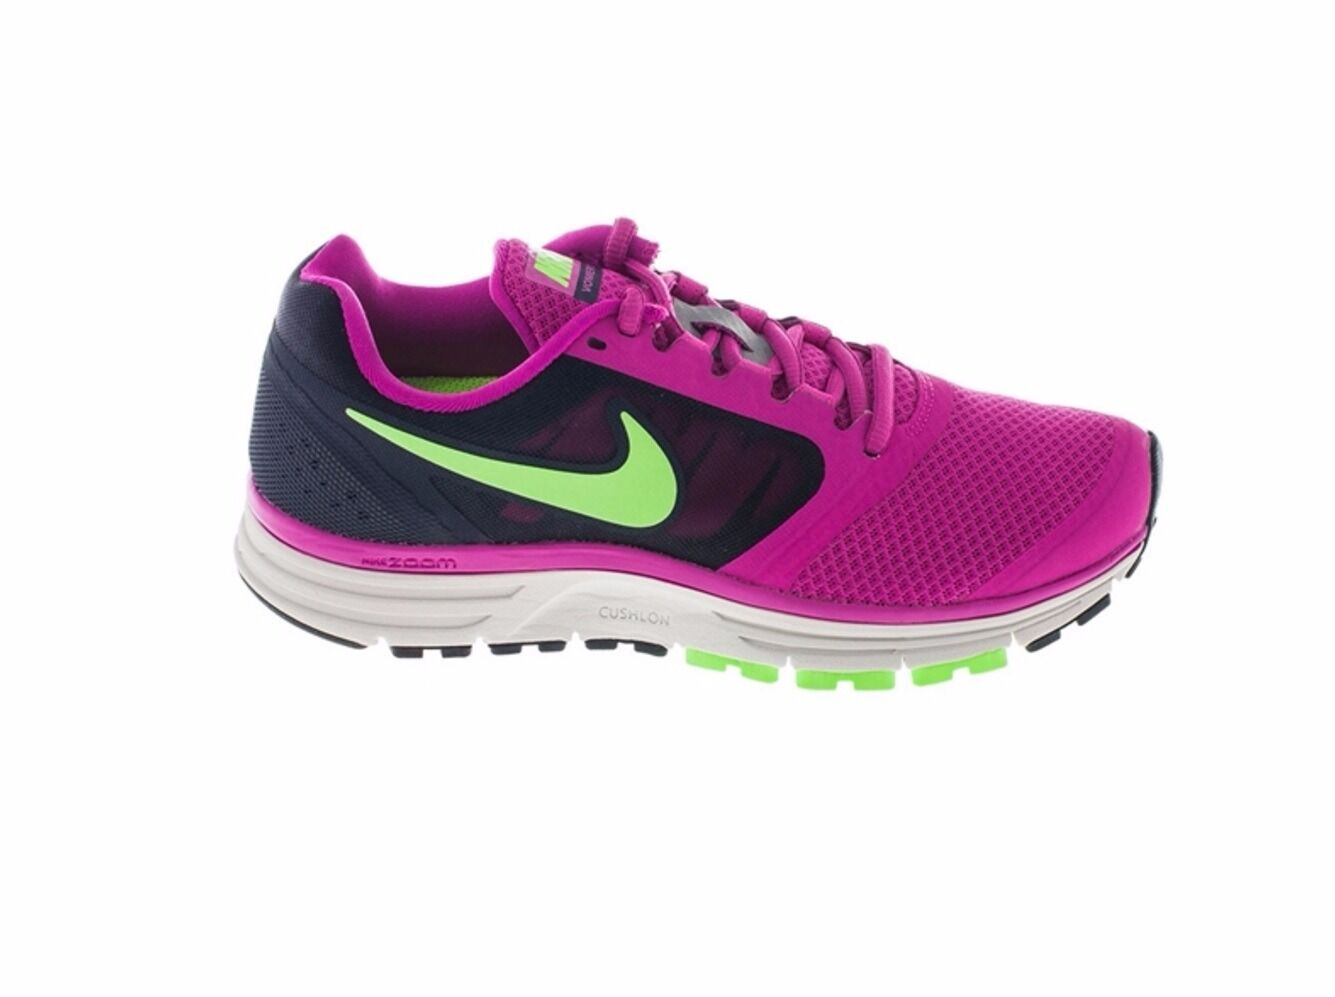 Nike - Womens Zoom Vomero + 8 Size 3 - 8 Trainer Shoe Club Pink New RRP £100/-